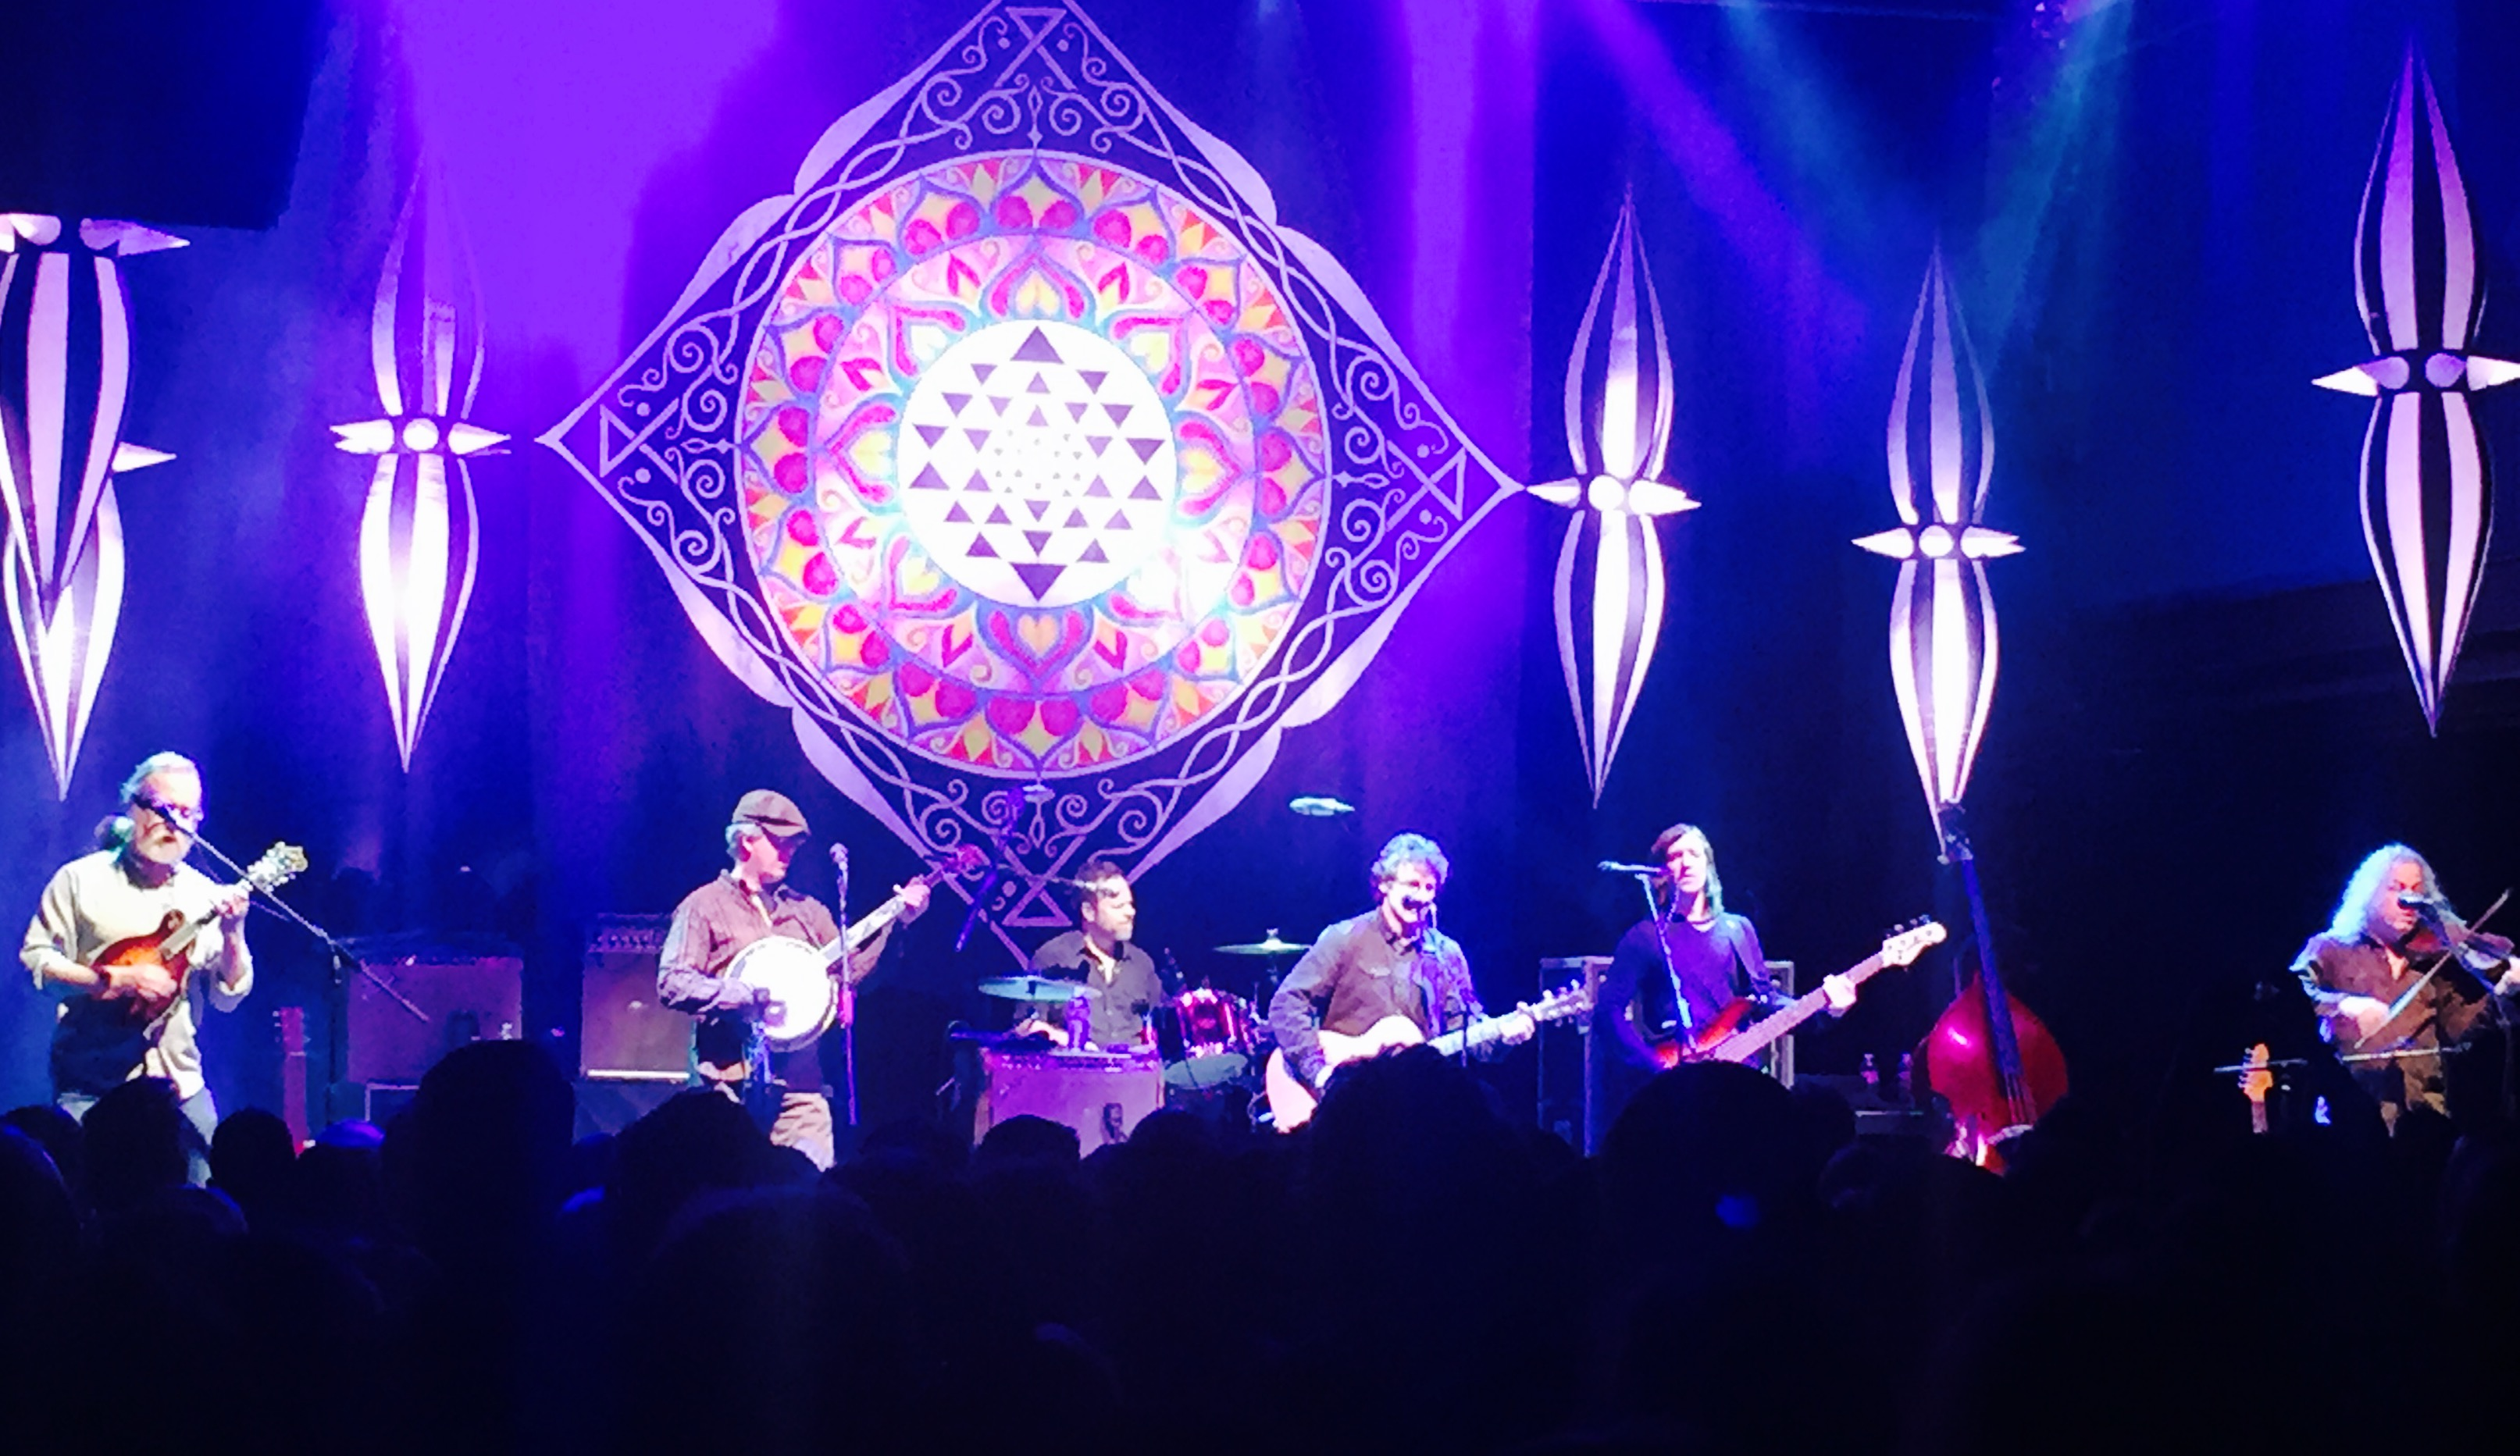 RailroadEarth2015-02-27_930ClubWashingtonDC.jpg